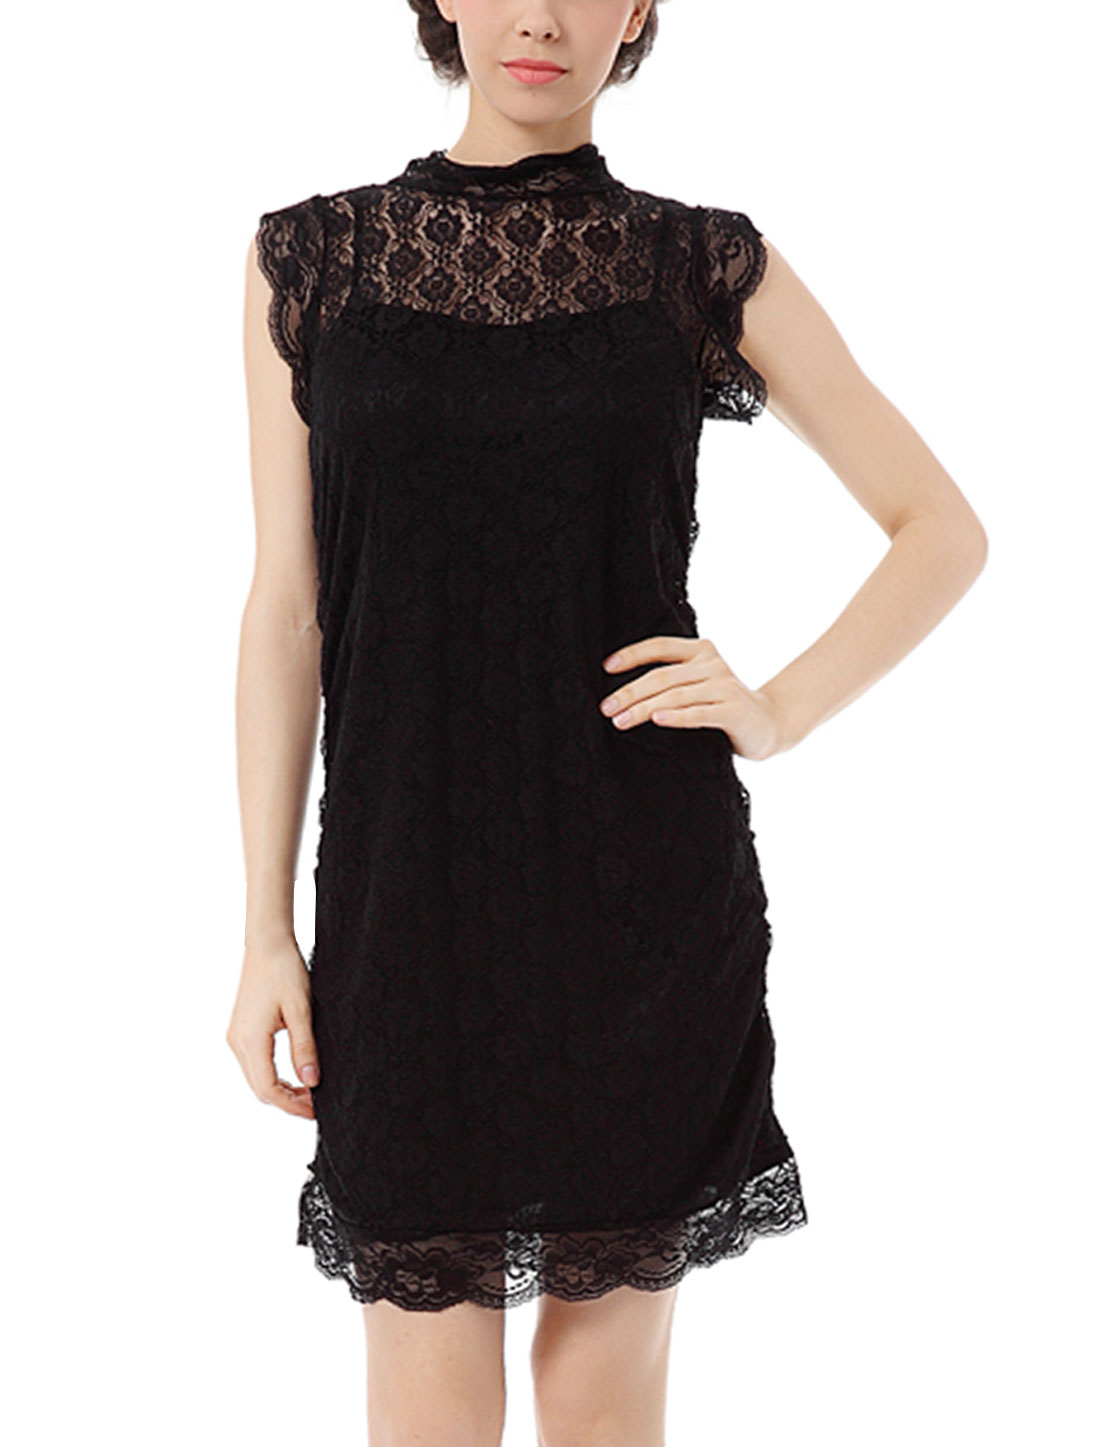 Woman Lace Guipure Overlay Sleeveless Stand Collar Mini Dress Black M